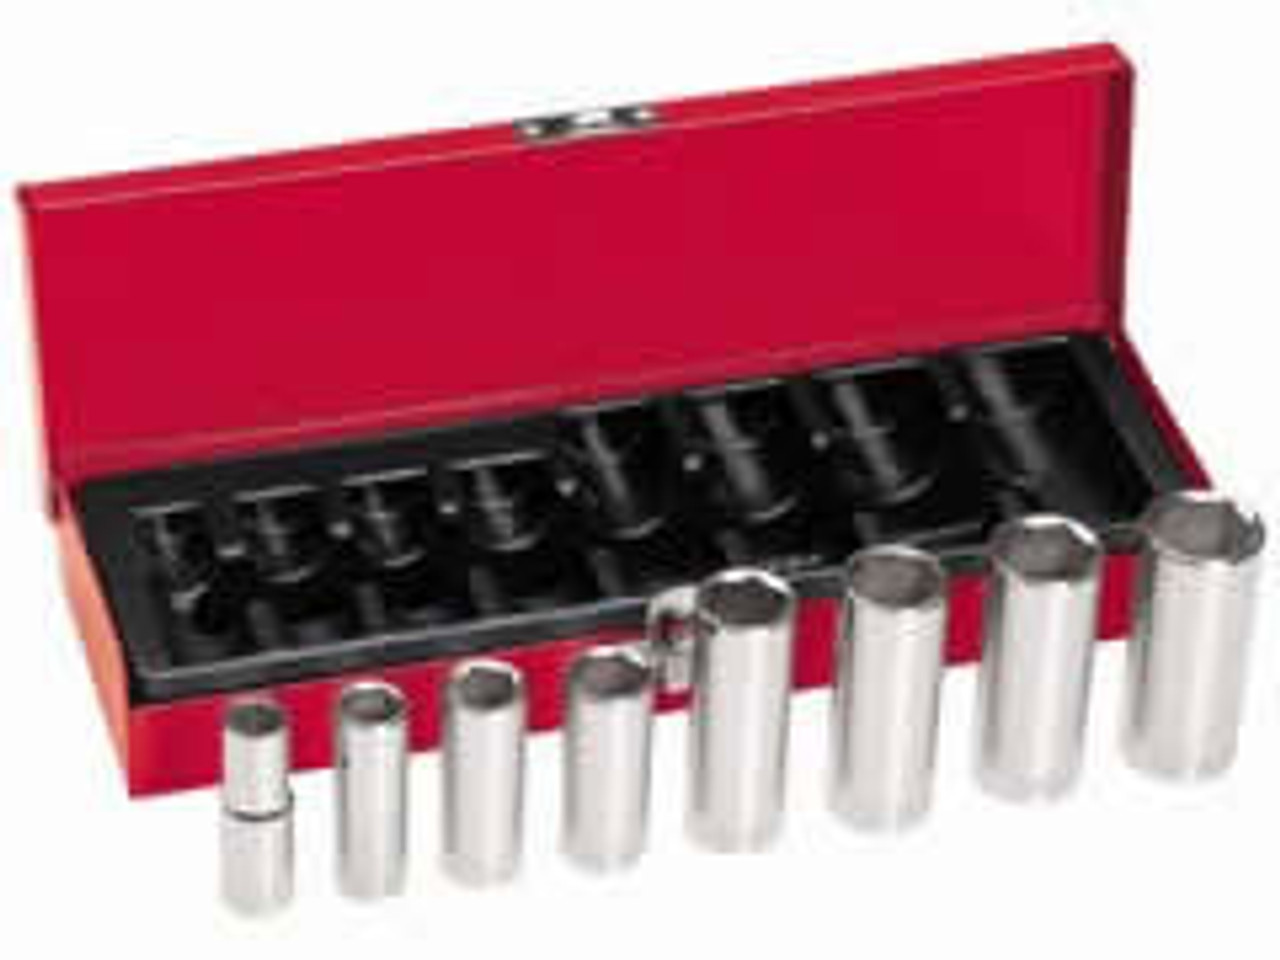 Klein 65502 8-Piece, 3/8-Inch Drive Deep-Socket Set